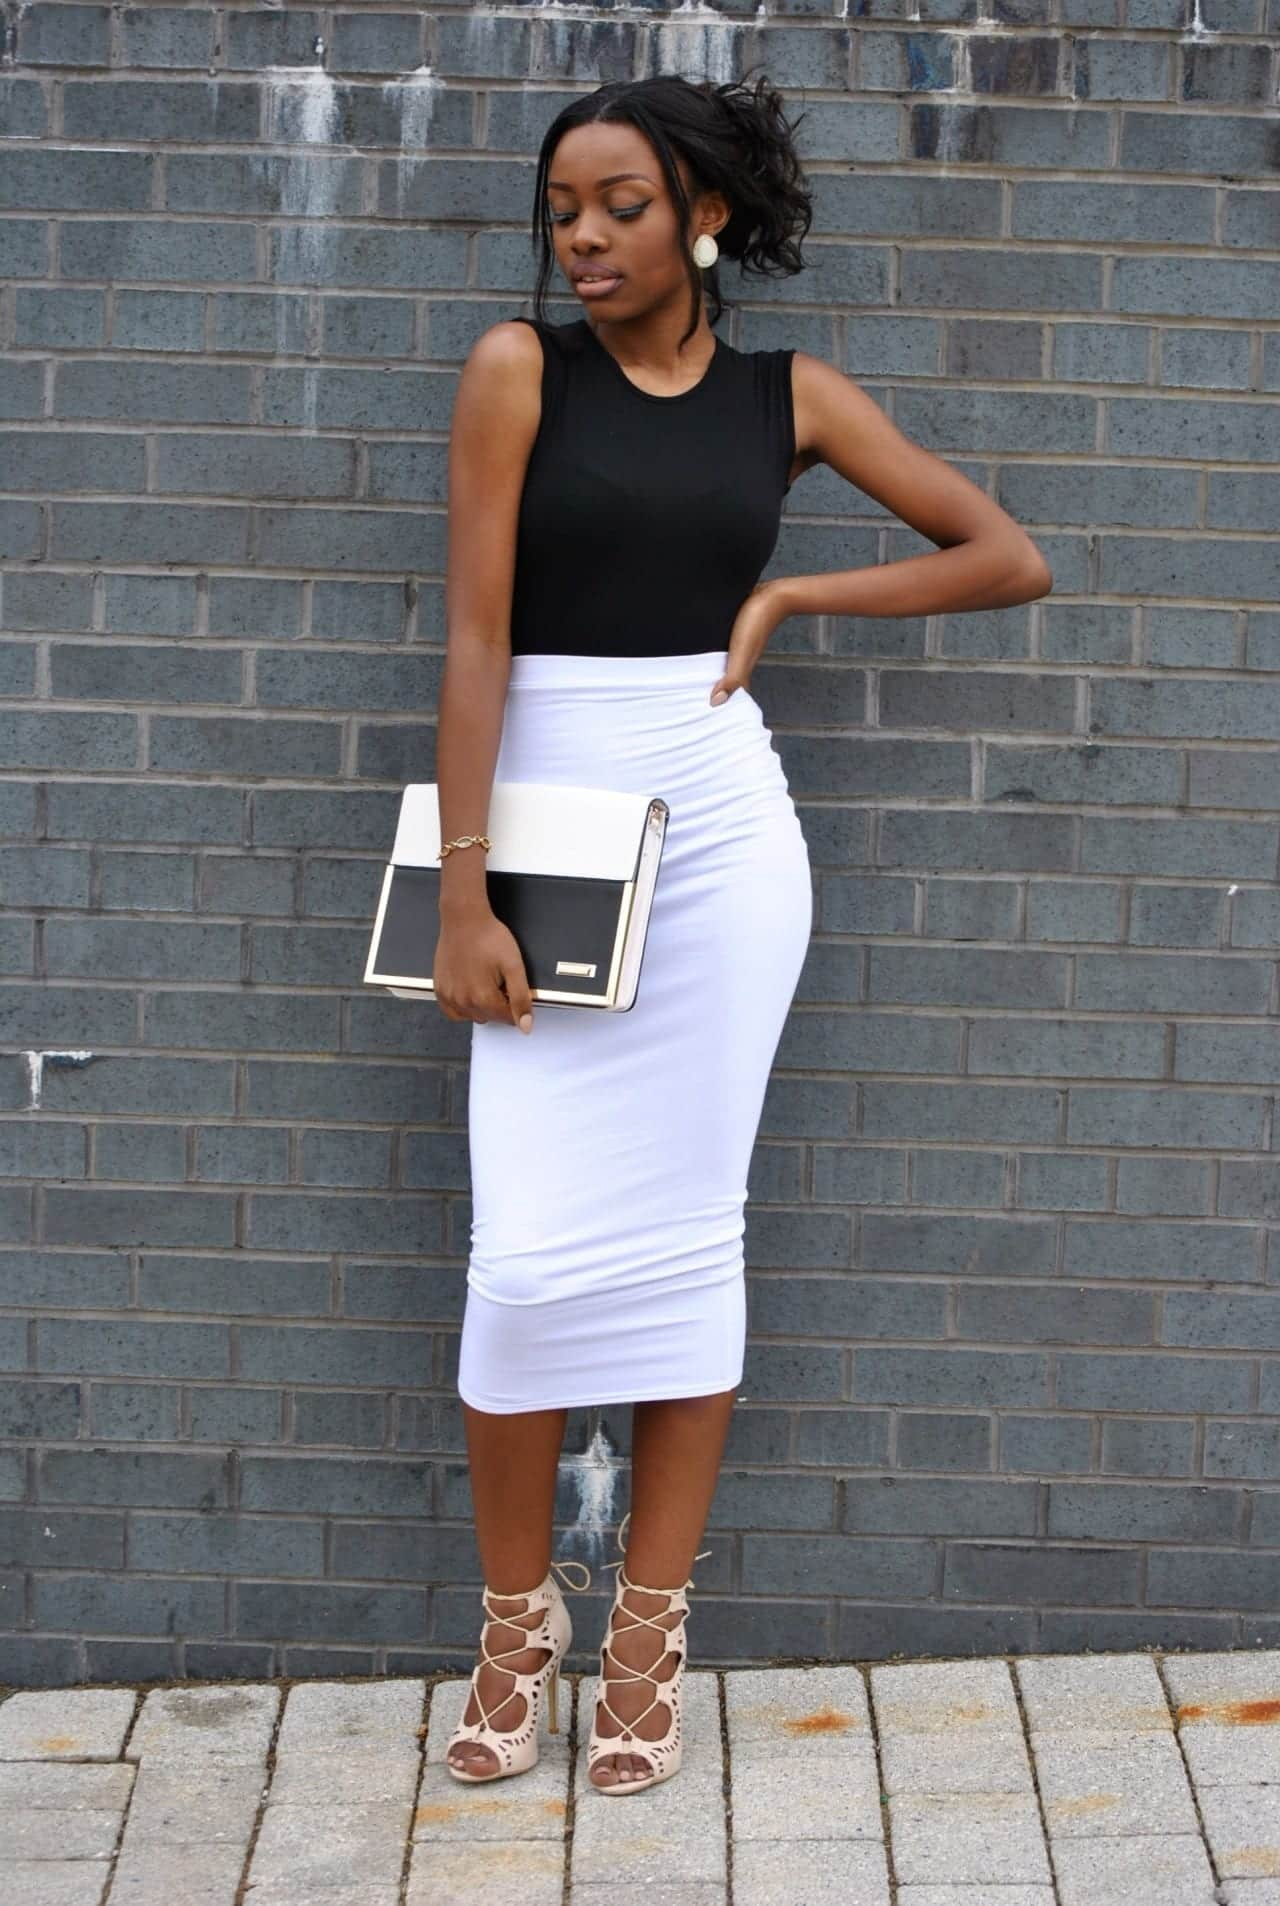 Best-Professional-Footwear Work Outfits for African Women-25 Professional Attires